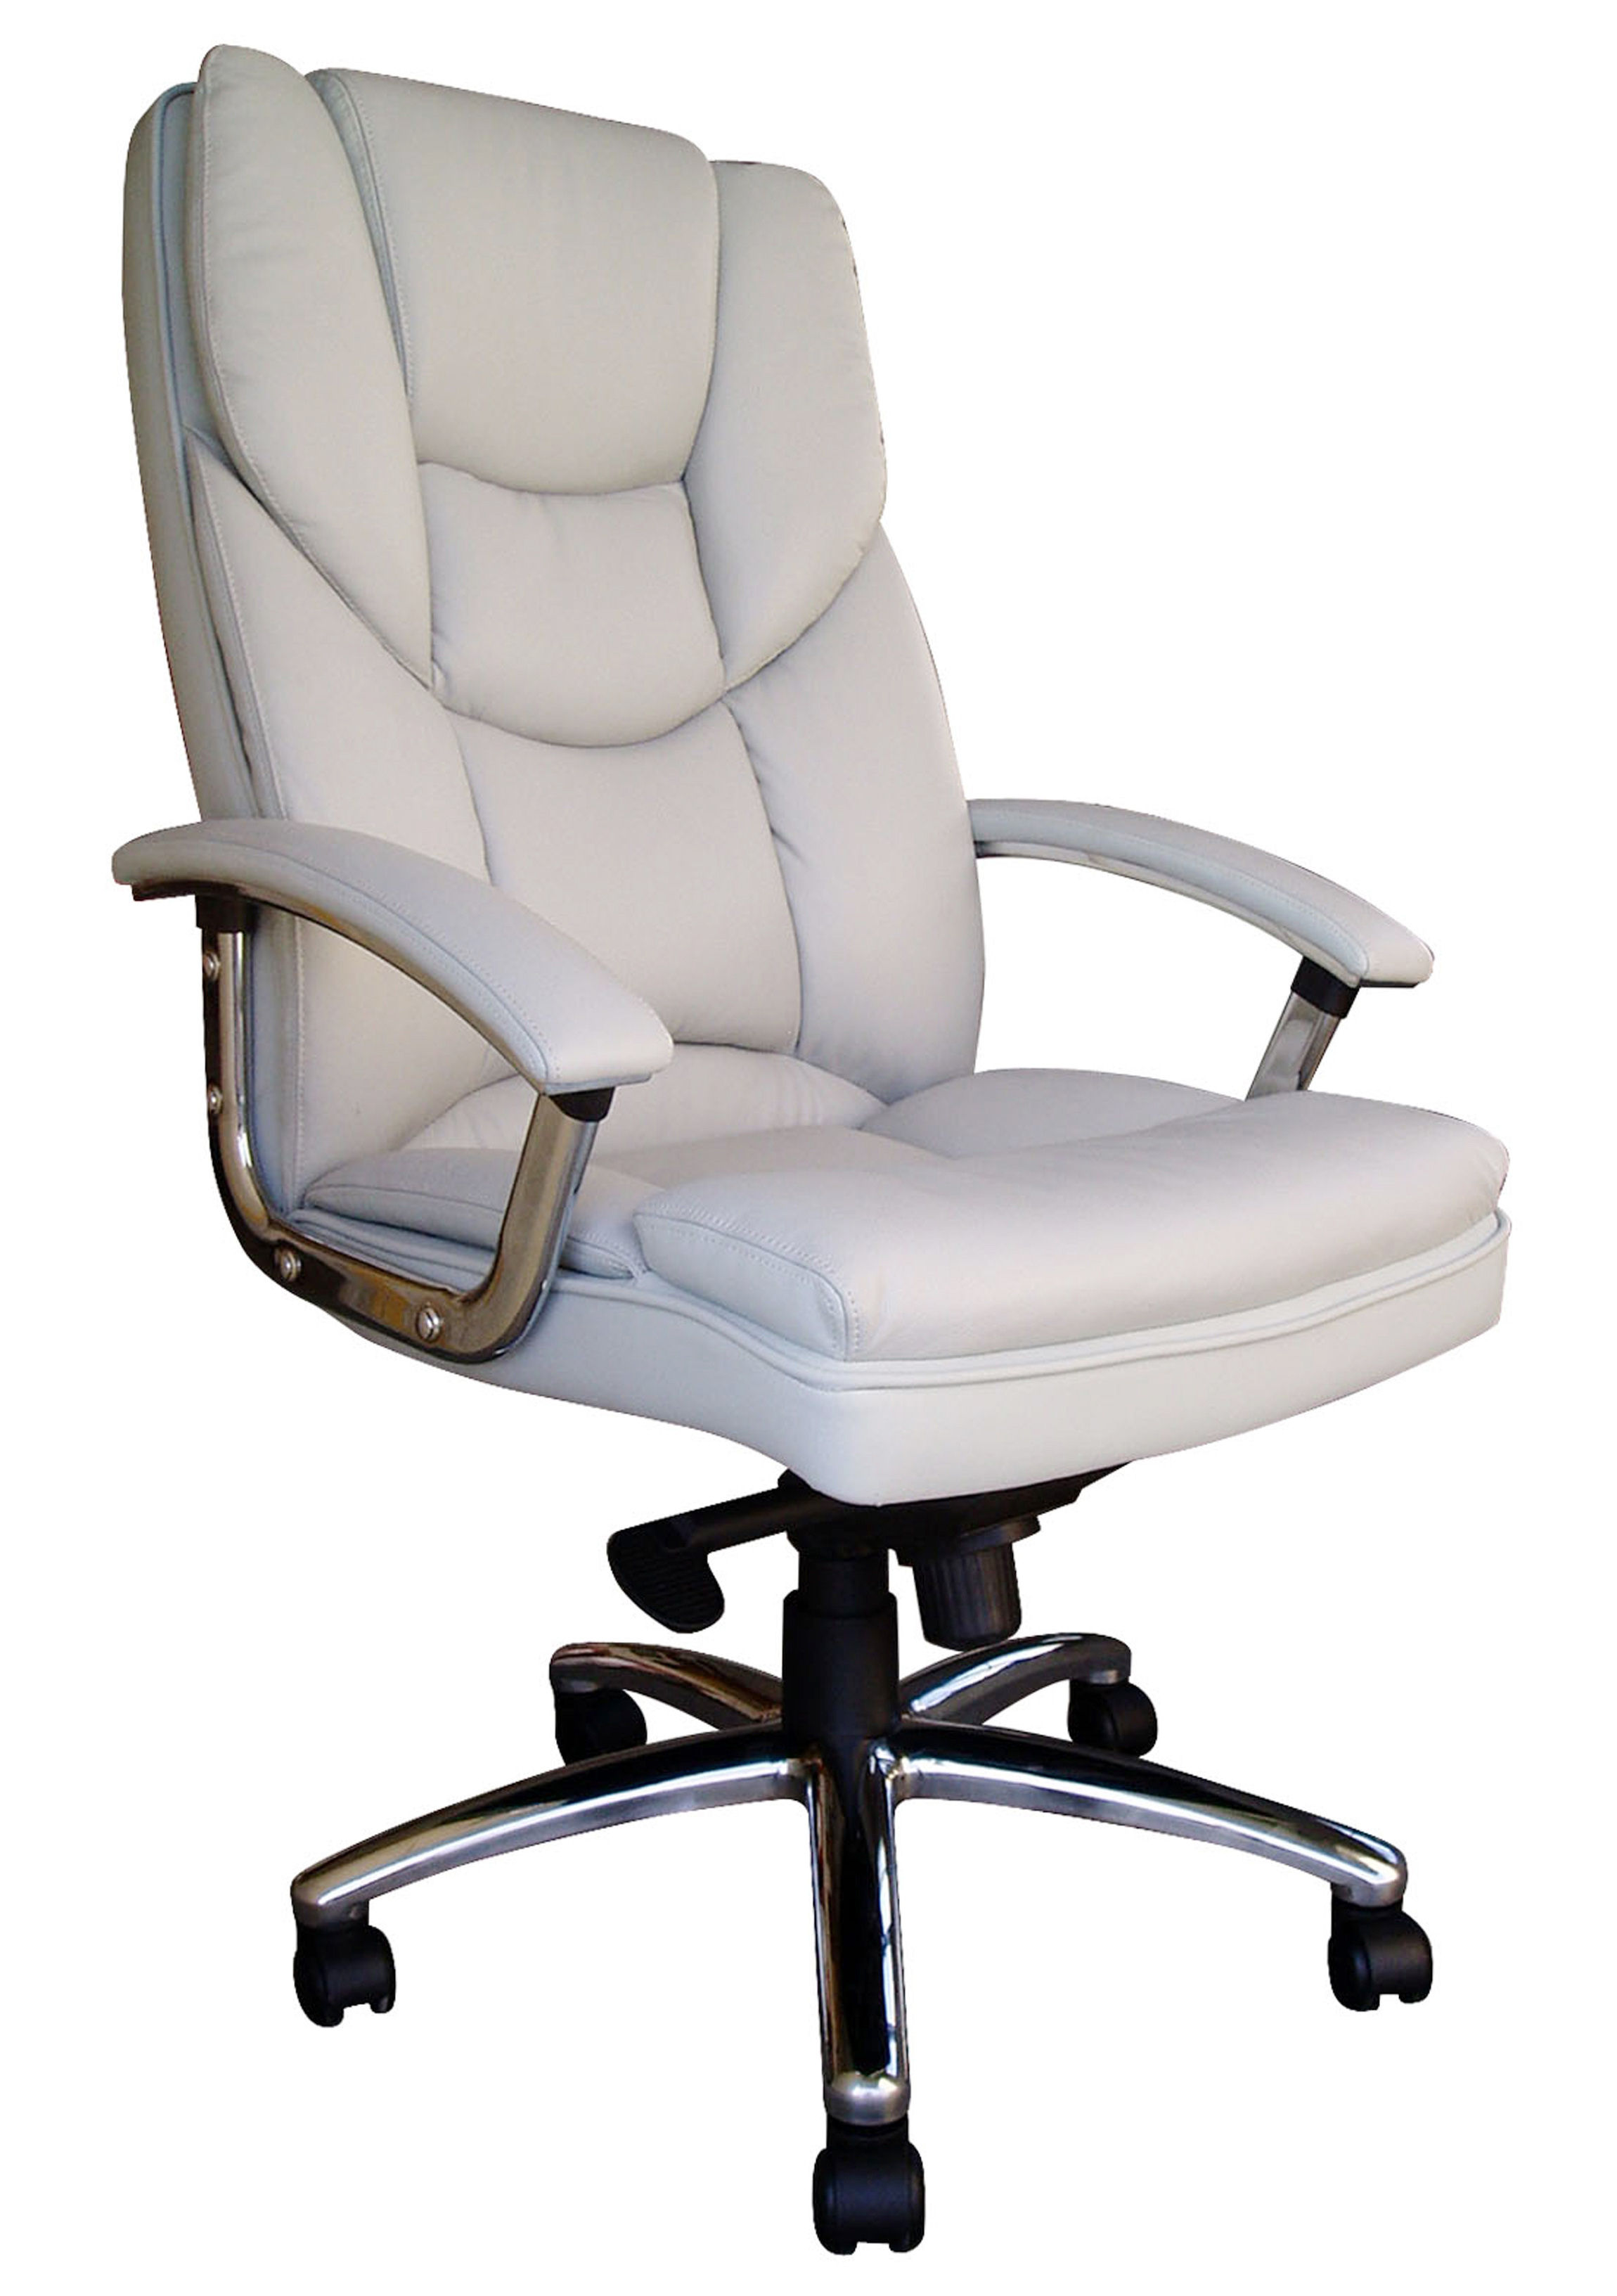 Skyline Luxury Leather Office Chair